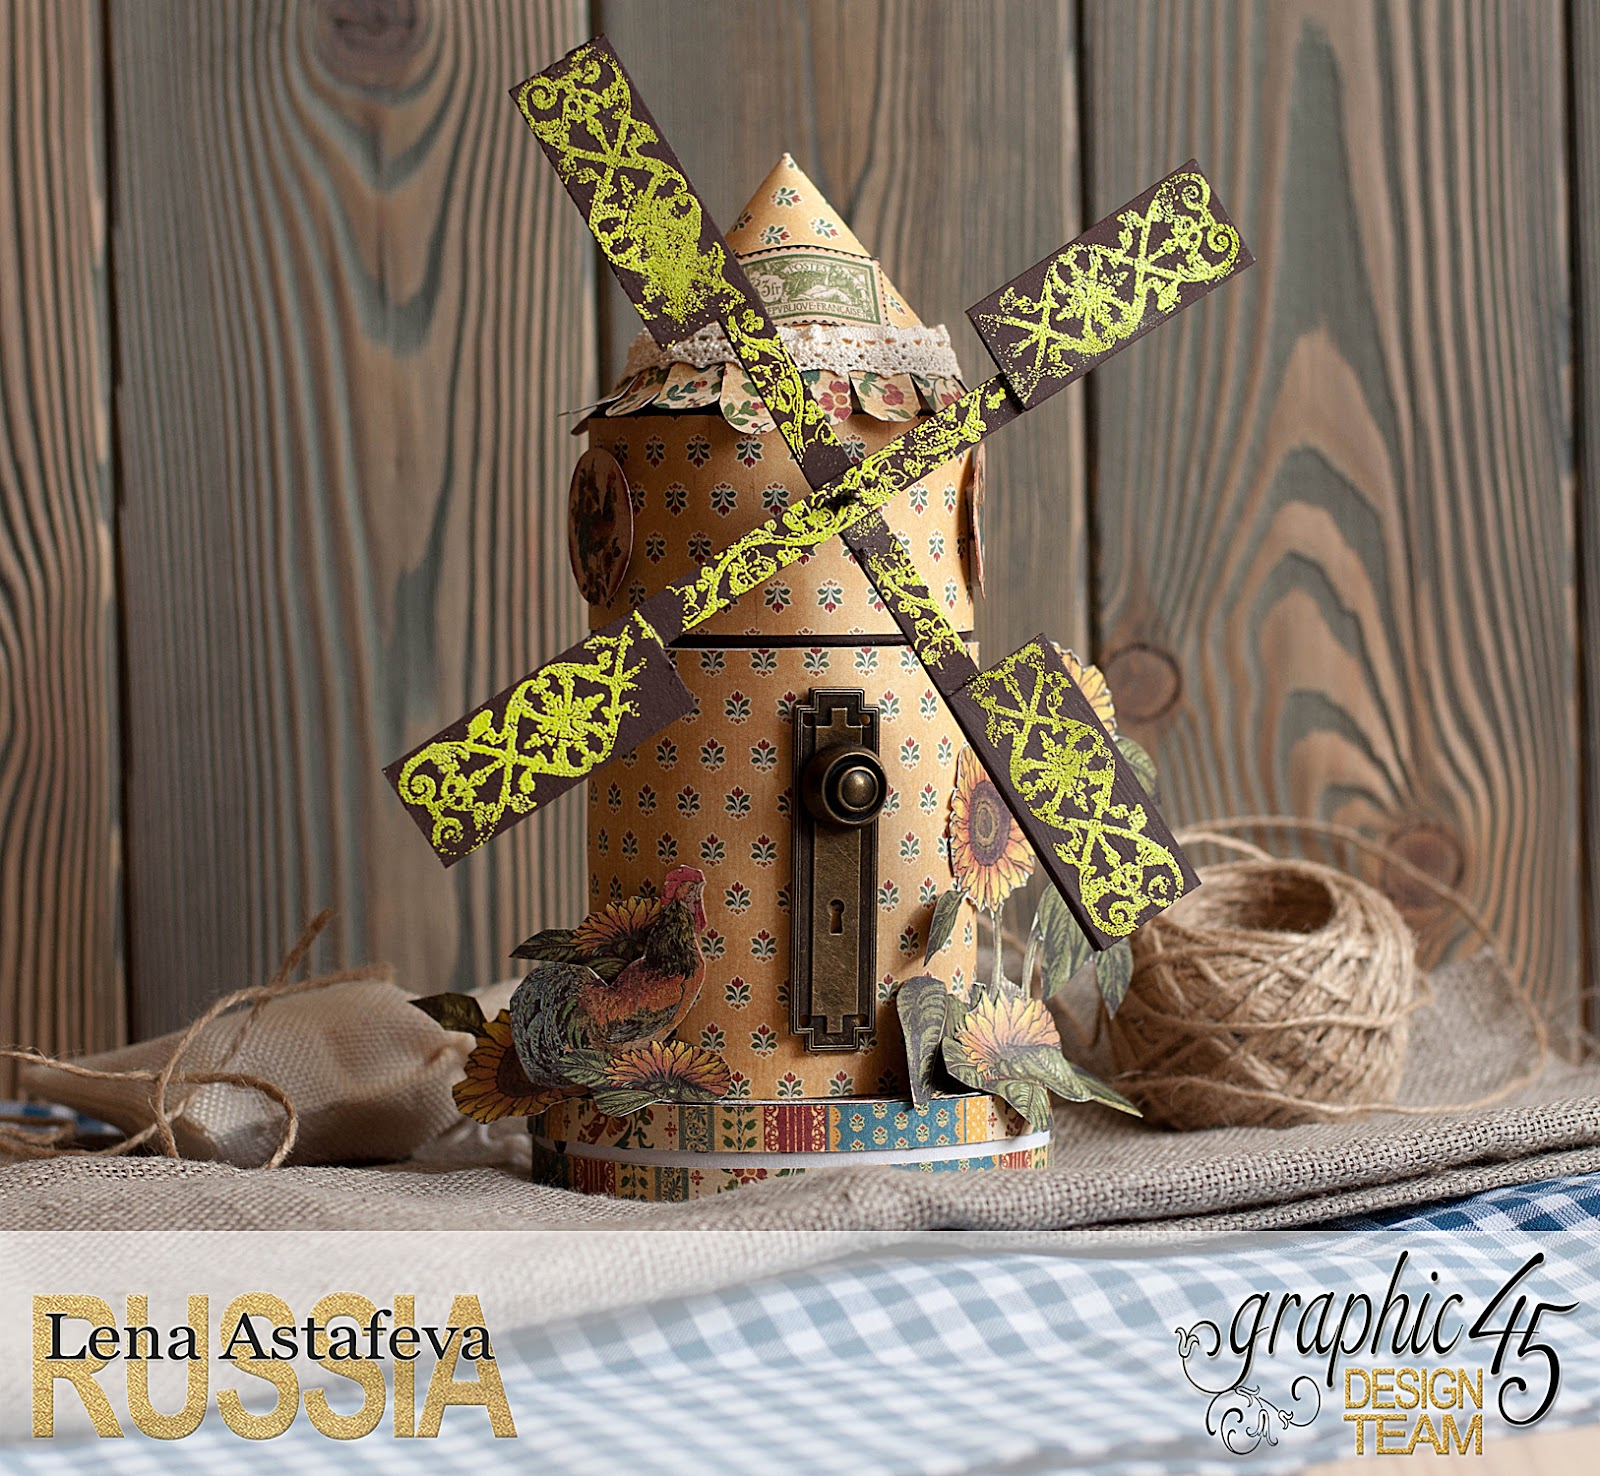 Mill-French Country-by tutorial Lena Astafeva-product Graphic 45-3.jpg